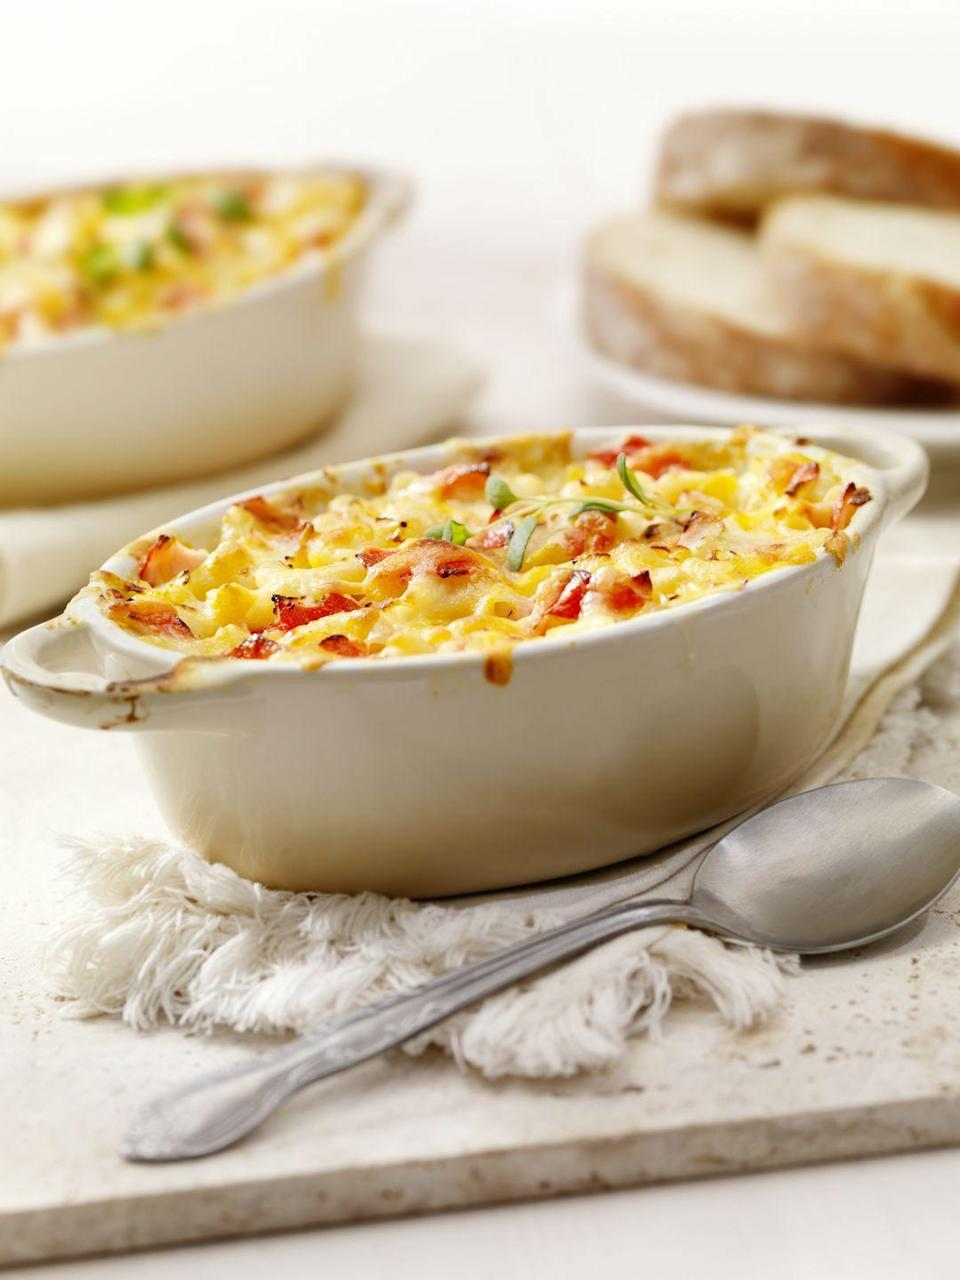 """<p>This elegant casserole was inspired by the tuna-noodle childhood favorite. It can be baked in individual casseroles or in one large dish and served buffet style.</p><p><strong><a href=""""https://www.countryliving.com/food-drinks/recipes/a1704/lobster-noodle-casserole-3829/"""" rel=""""nofollow noopener"""" target=""""_blank"""" data-ylk=""""slk:Get the recipe."""" class=""""link rapid-noclick-resp"""">Get the recipe.</a></strong></p>"""